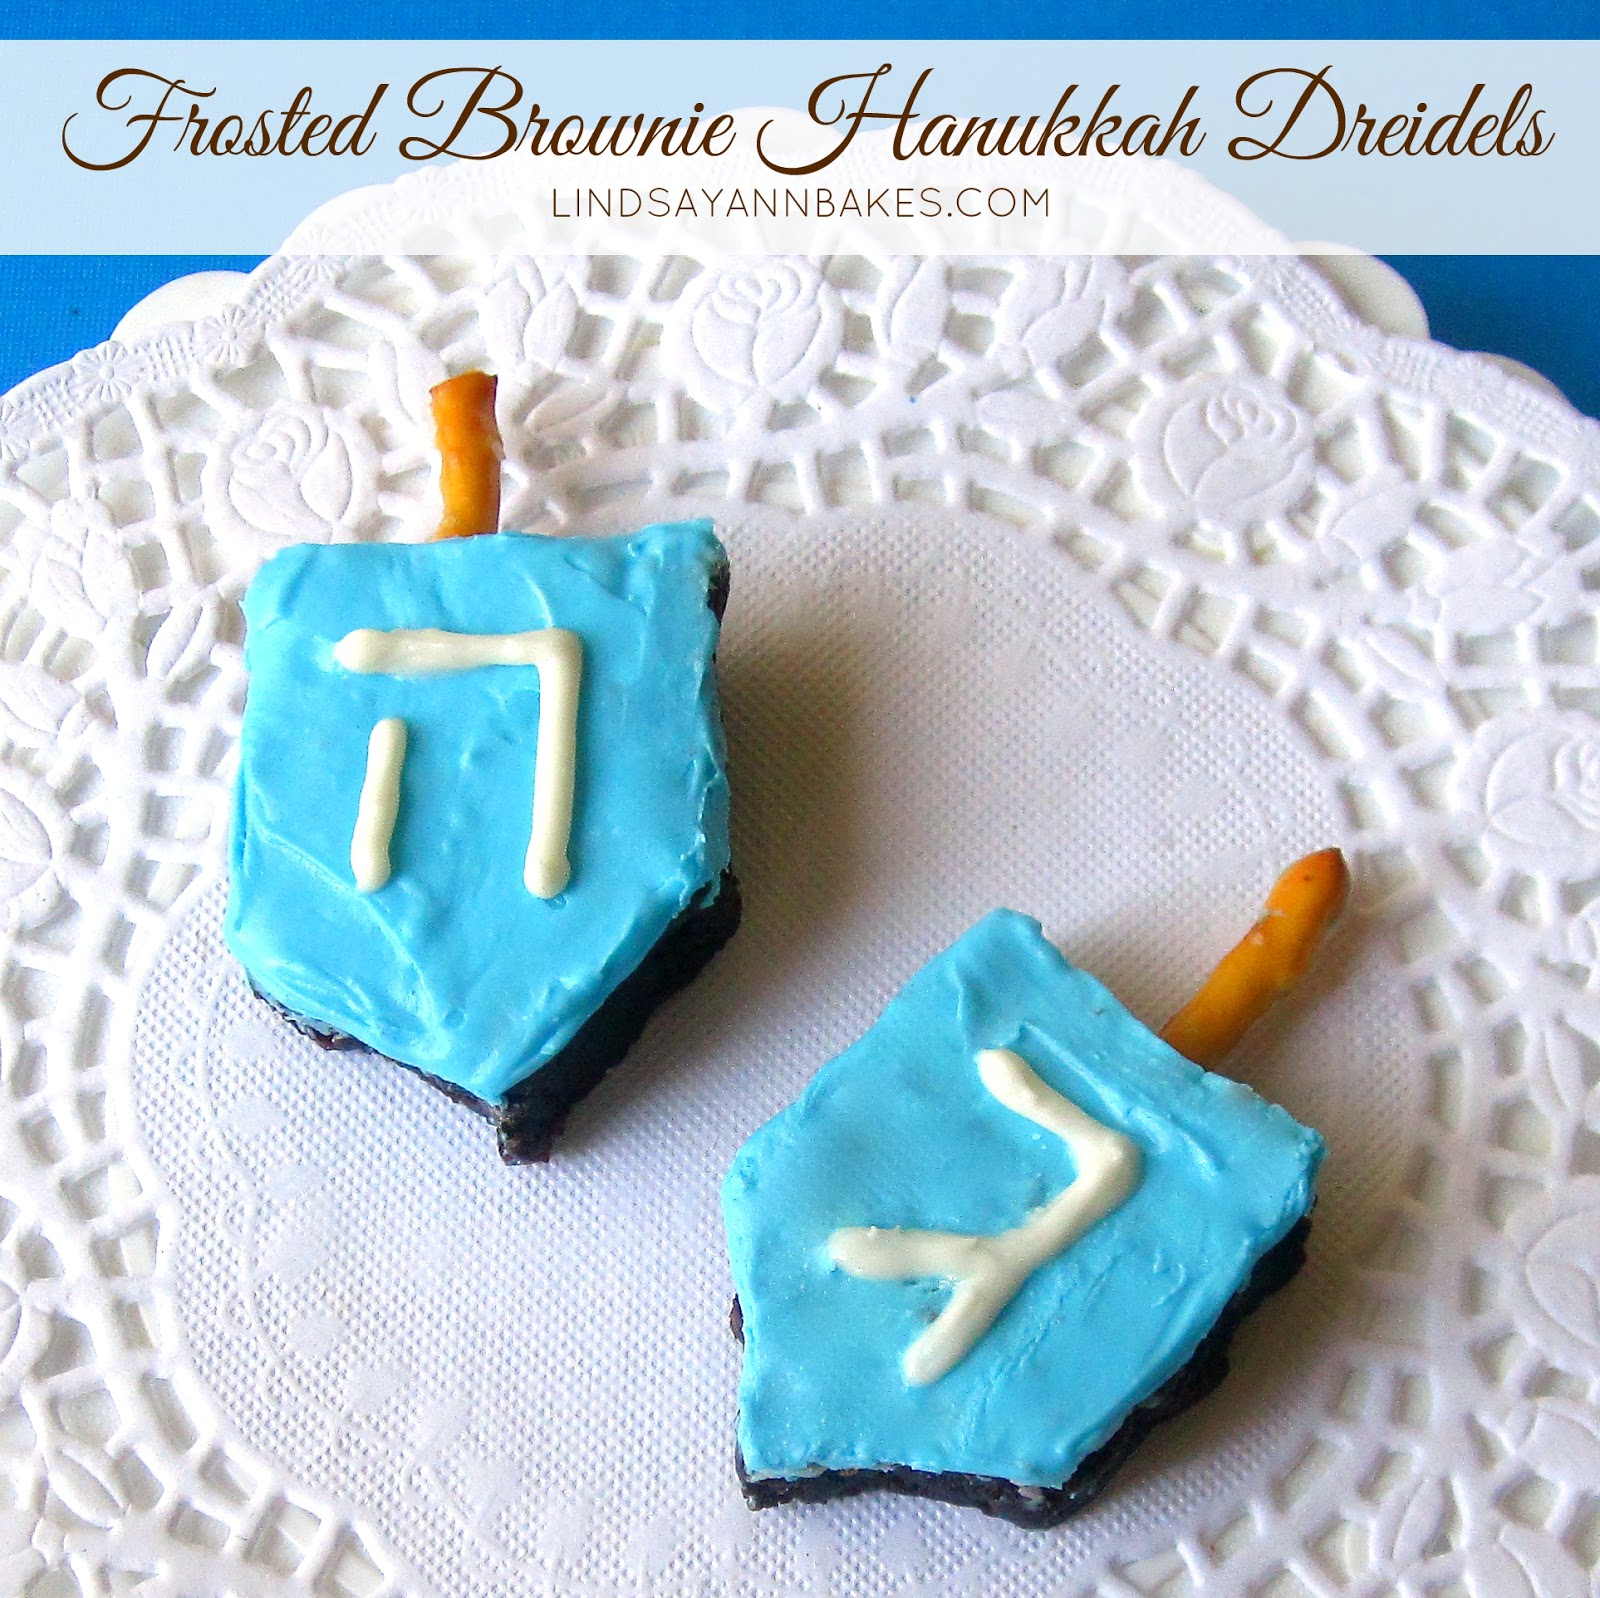 Uncategorized Edible Dreidels frosted brownie hanukkah dreidels lindsay ann bakes i helped develop these for the december 2013 edition of family fun magazine along with some christmas trees kids can even get